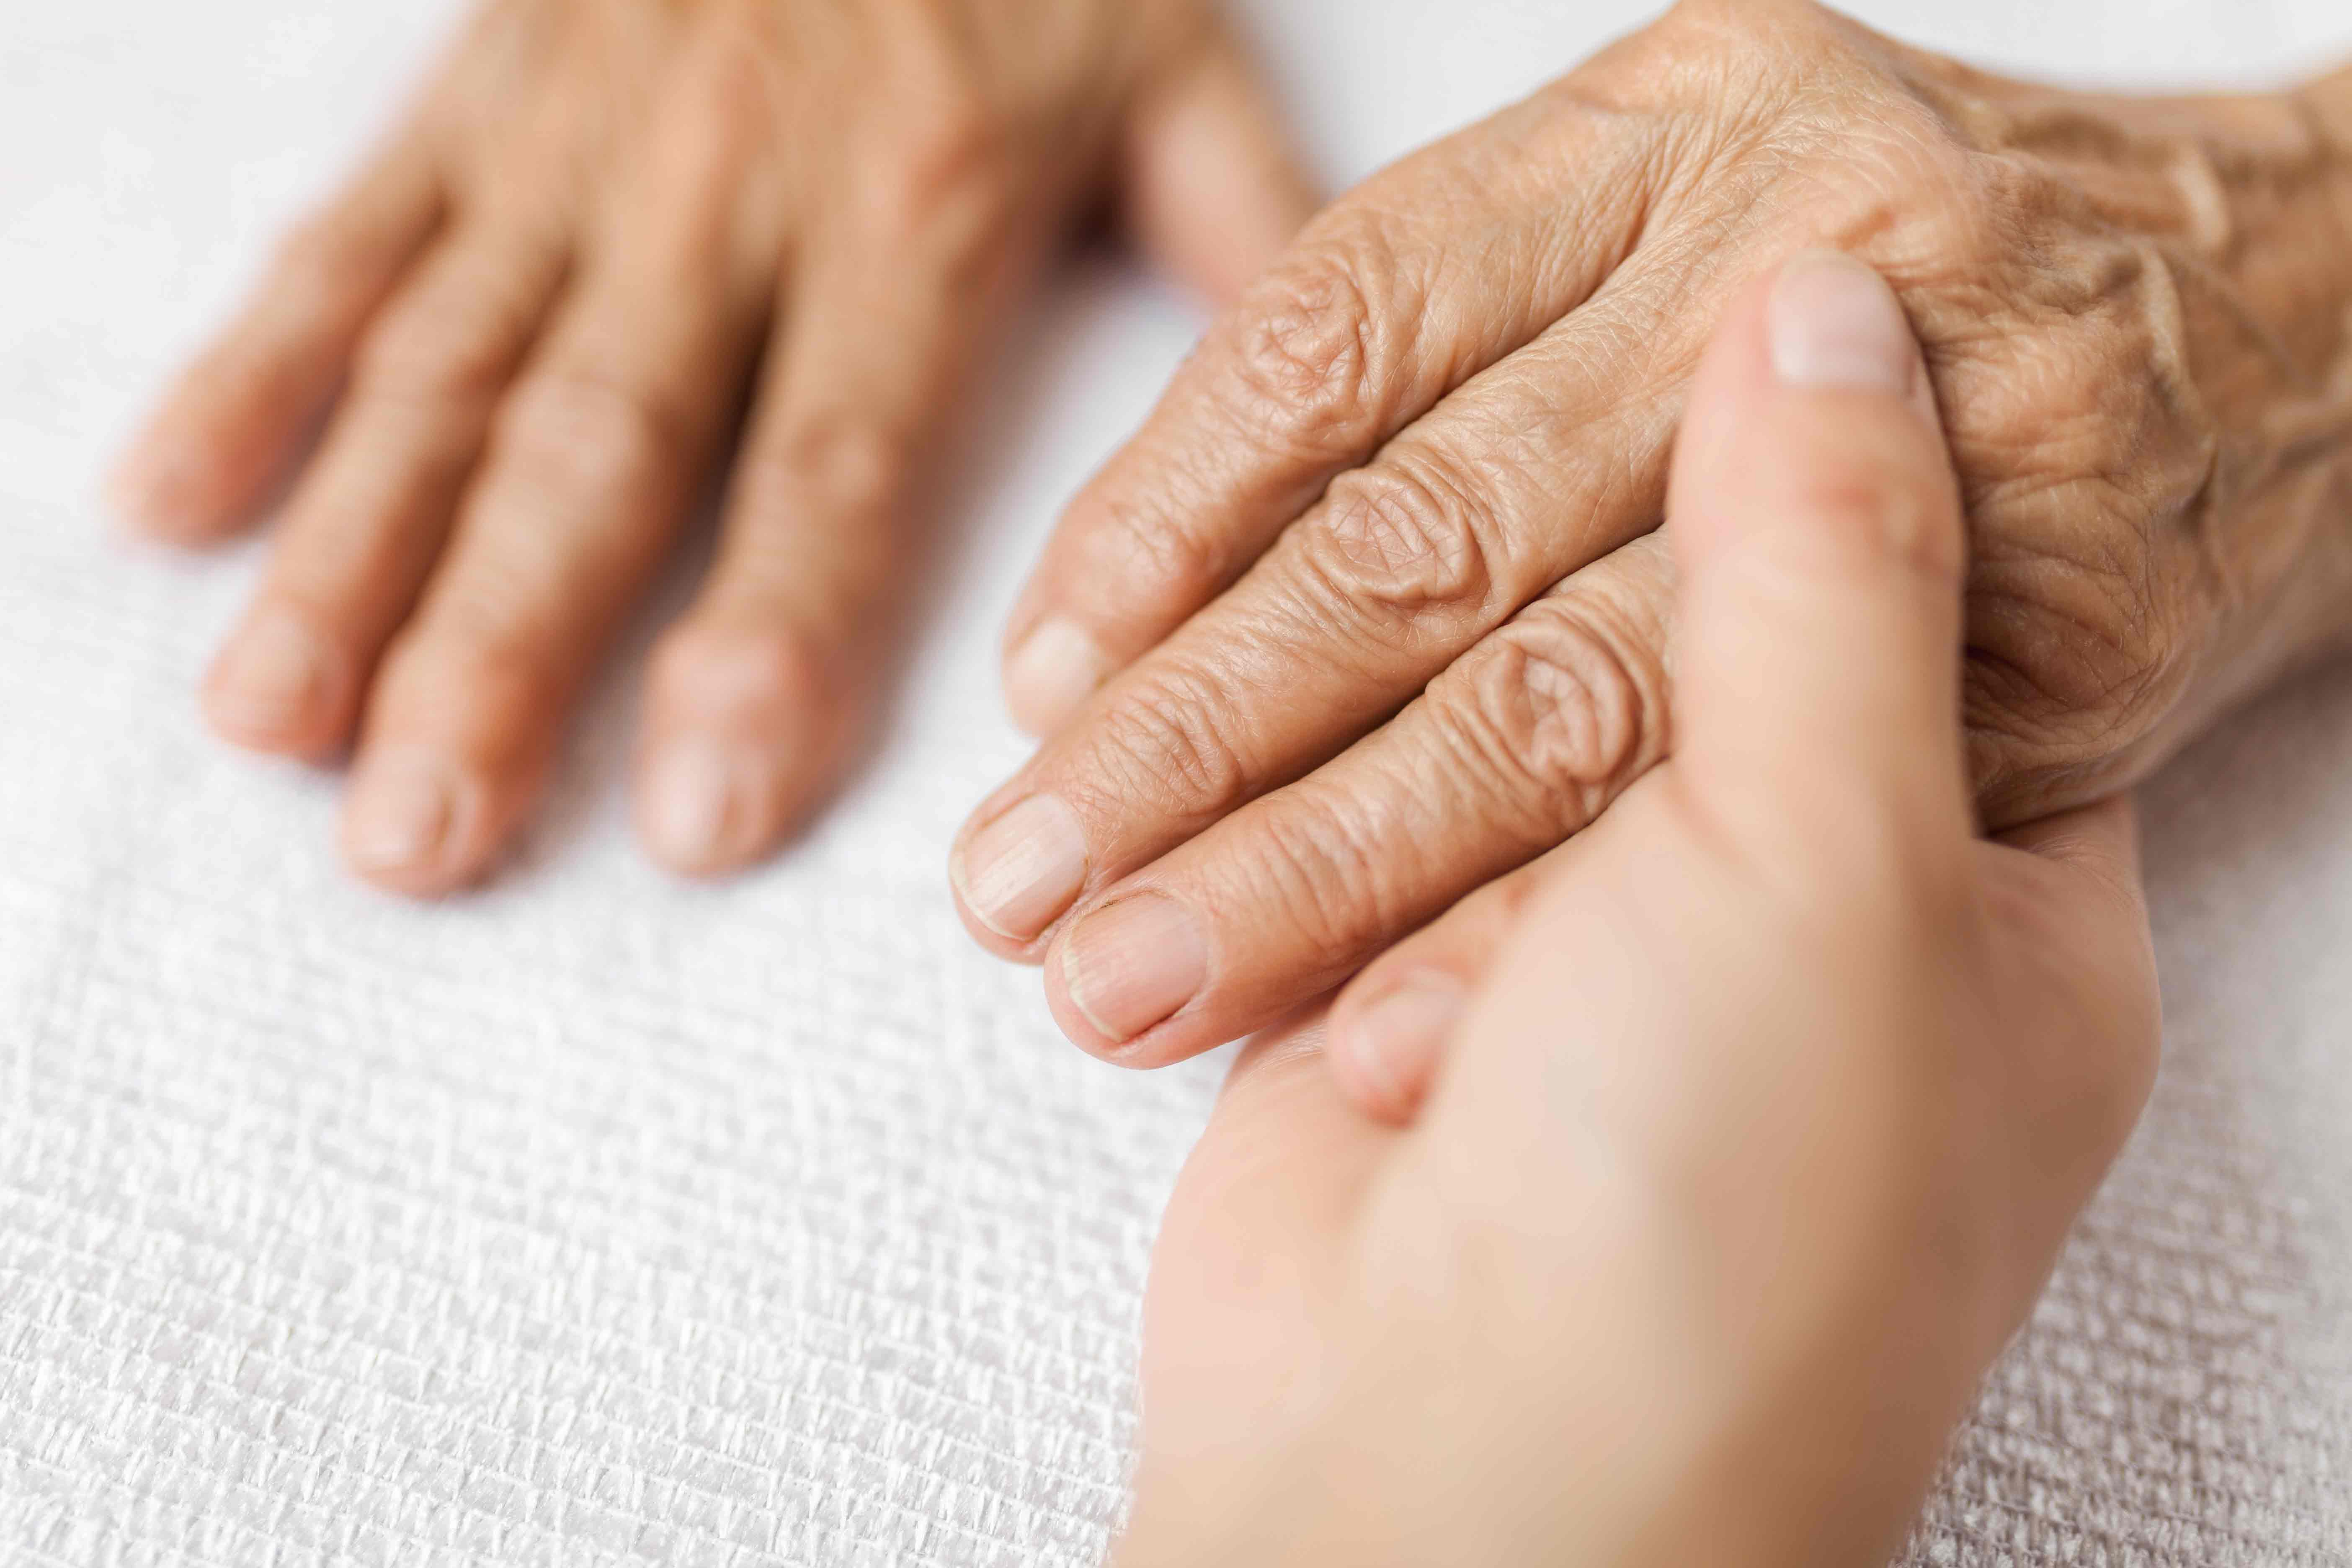 Caregiver Holding Elderly Woman's Hand - Memory Care Home Solutions - Family Caregiver Training